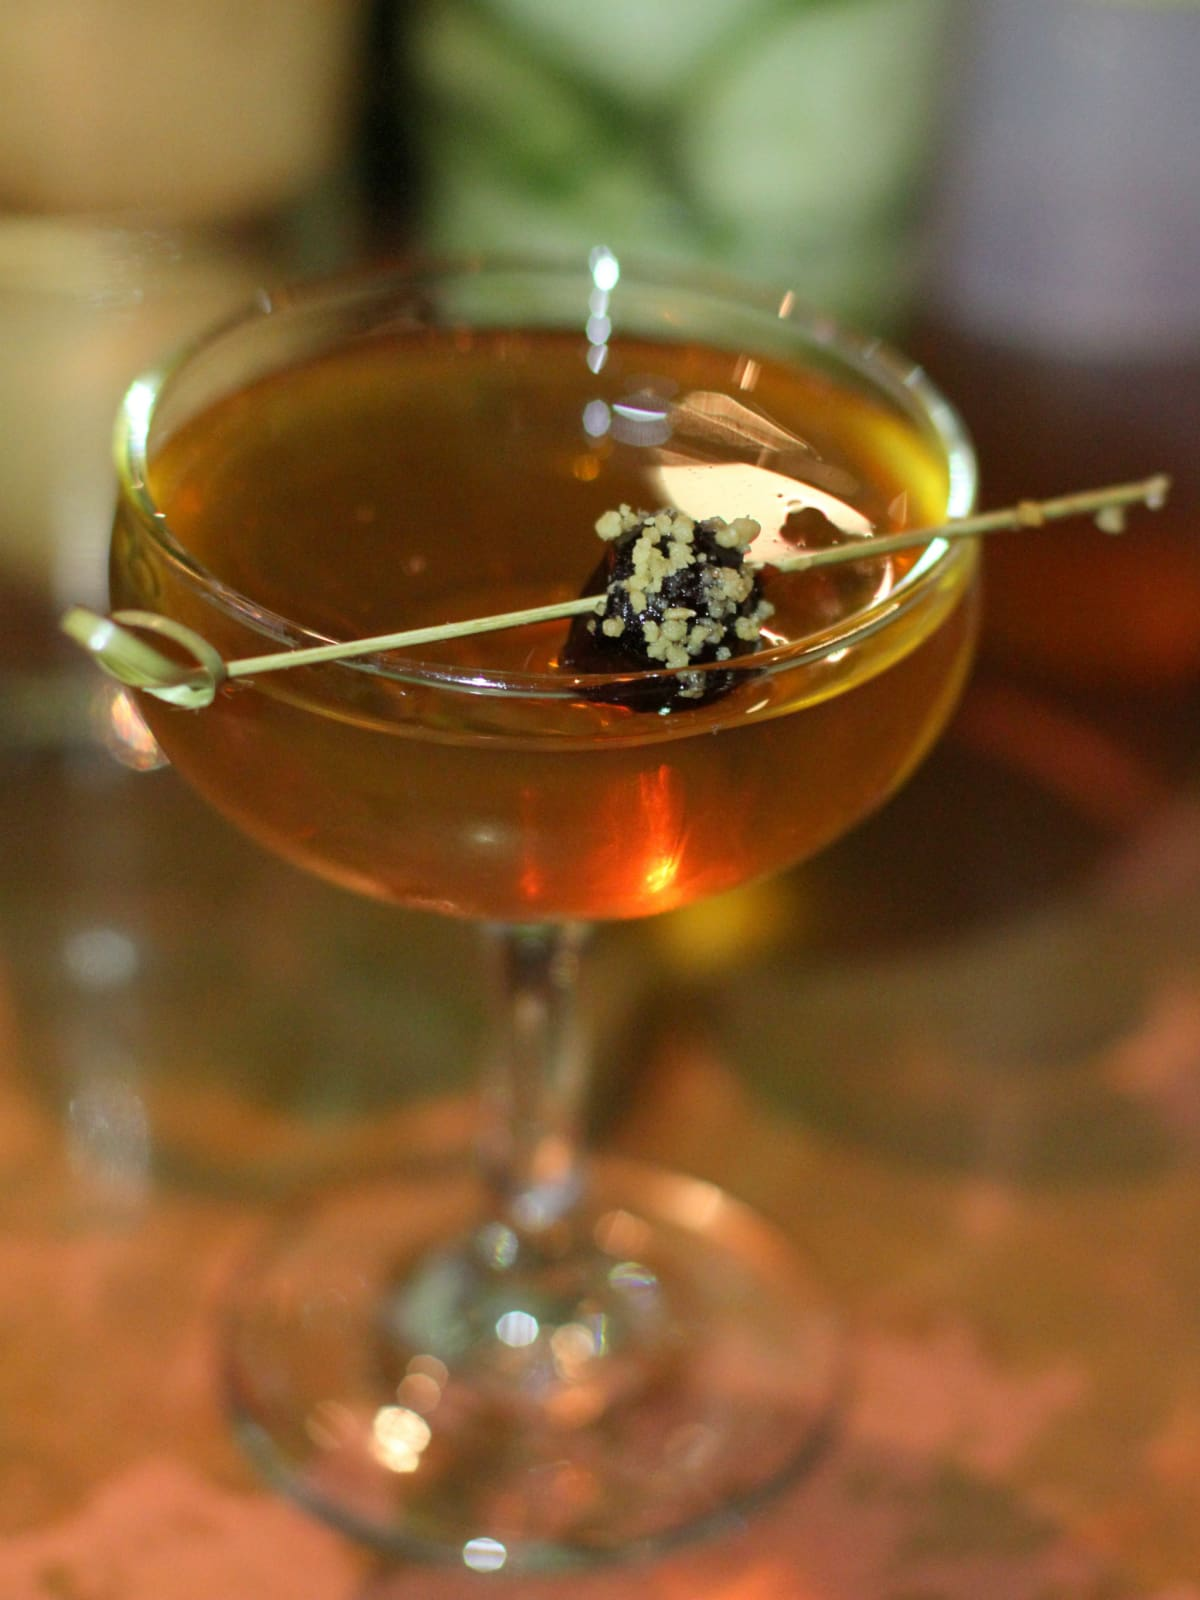 Matt Orth's drink at Woodford Reserve Manhattan party